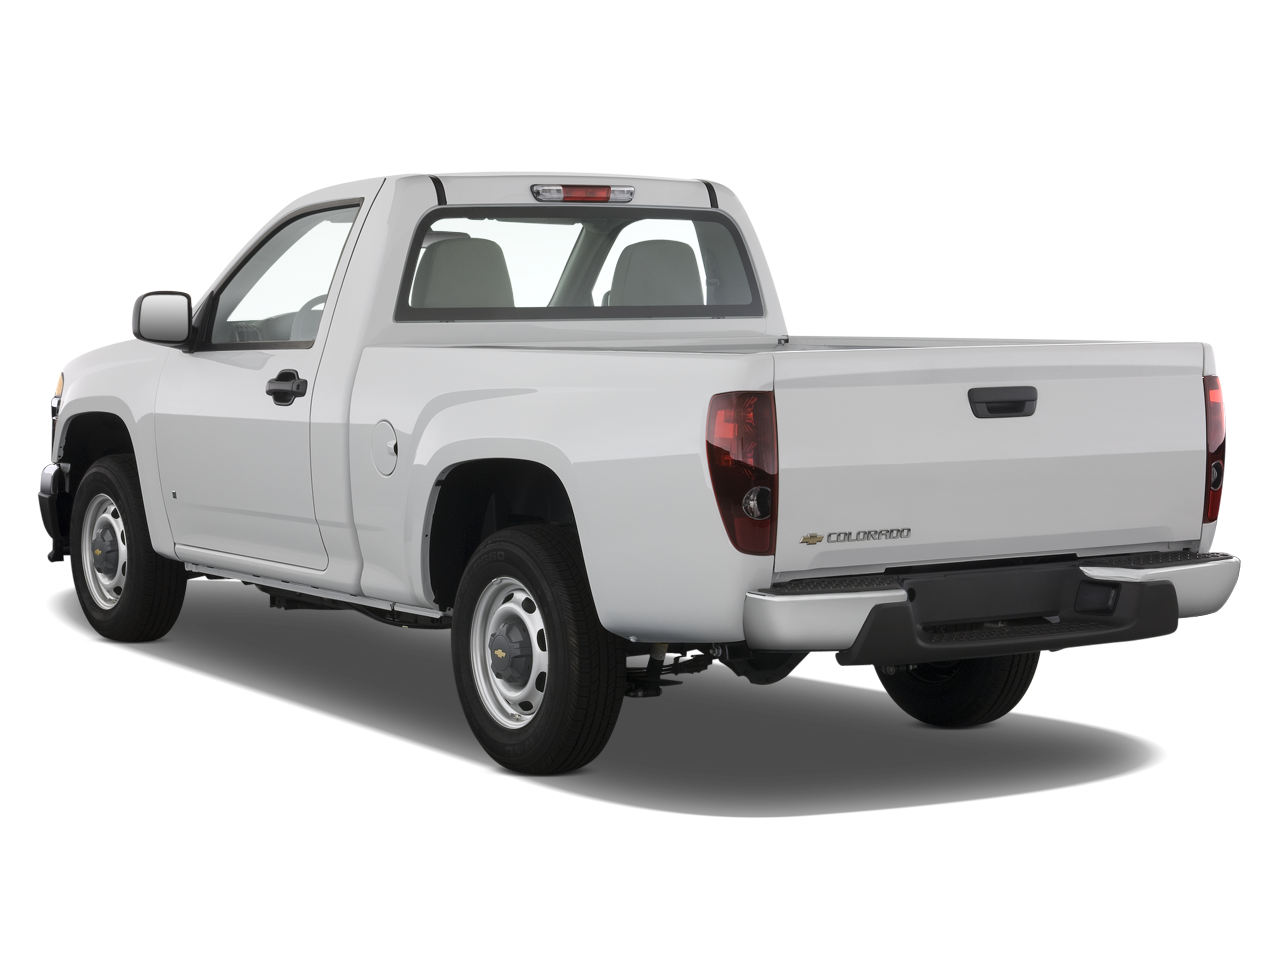 2009 Chevy Colorado And 2009 Gmc Canyon First Drive